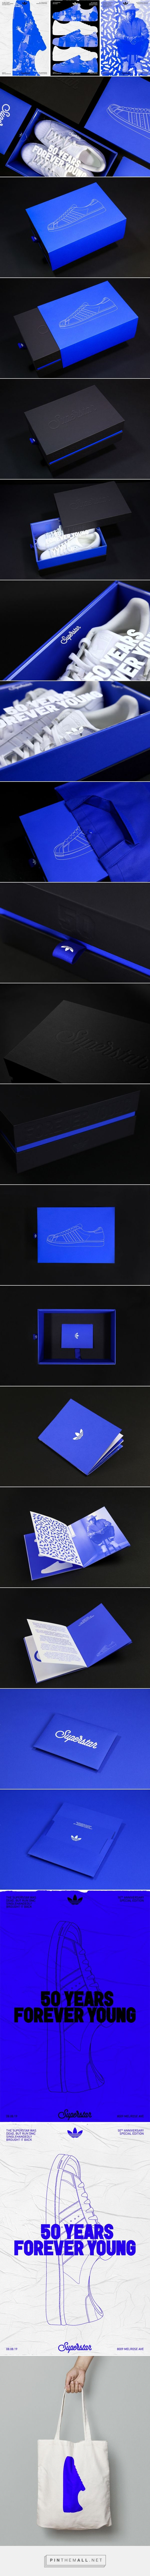 Adidas Superstar 50th Anniversary student packaging concept design by Duy Dao - http://www.packagingoftheworld.com/2017/12/adidas-superstar-50th-anniversary.html